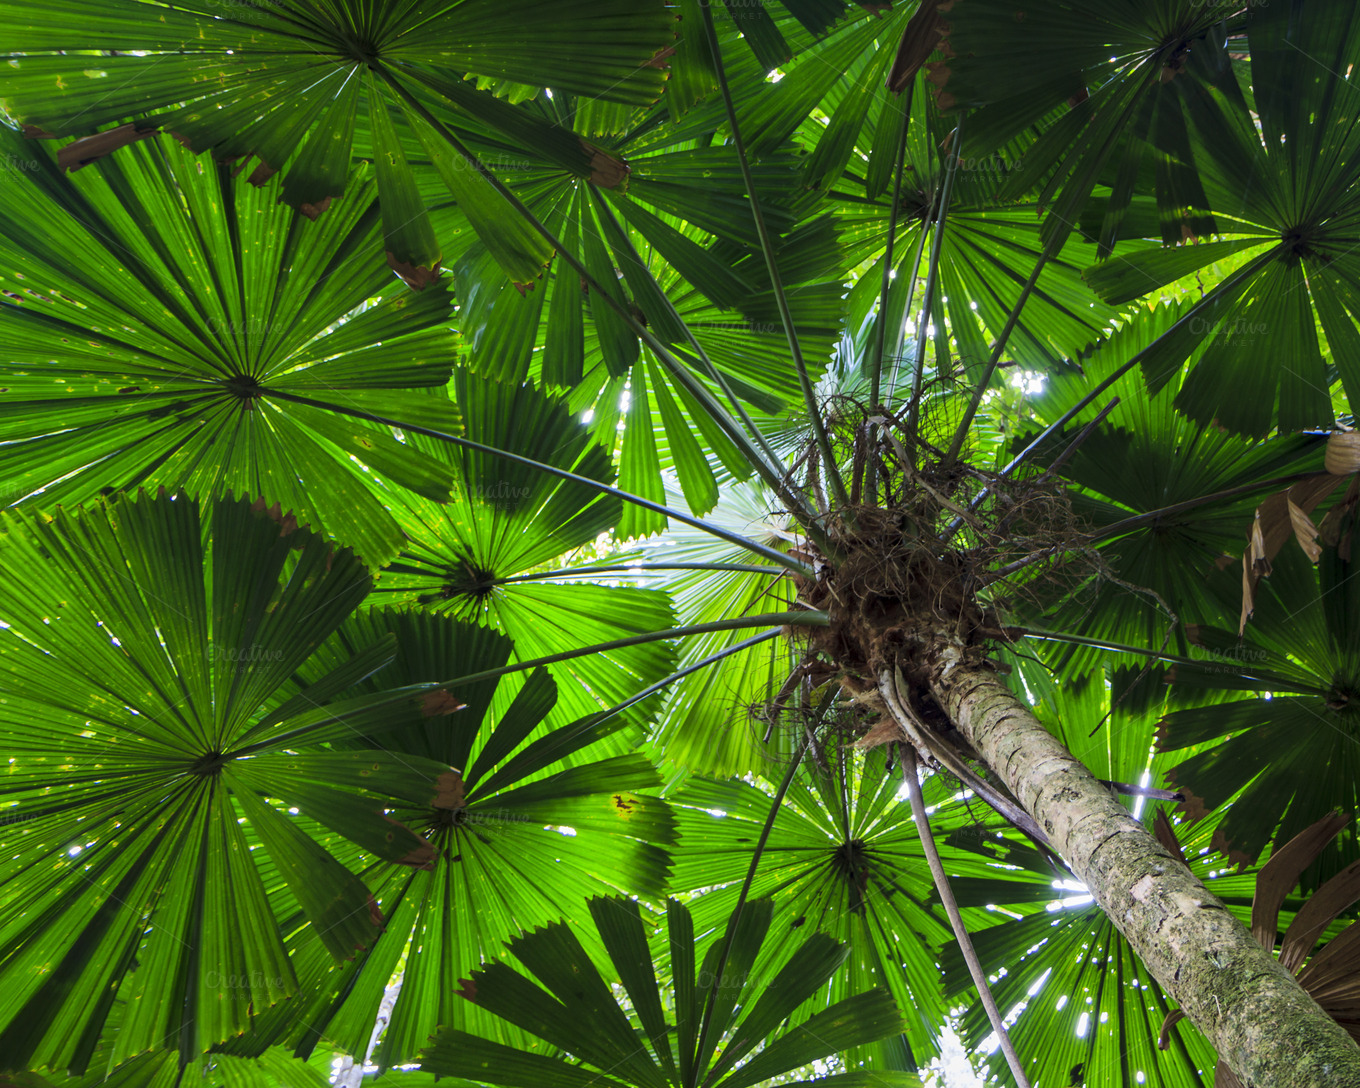 Green Fan Palm Tree Background Nature Photos On Creative